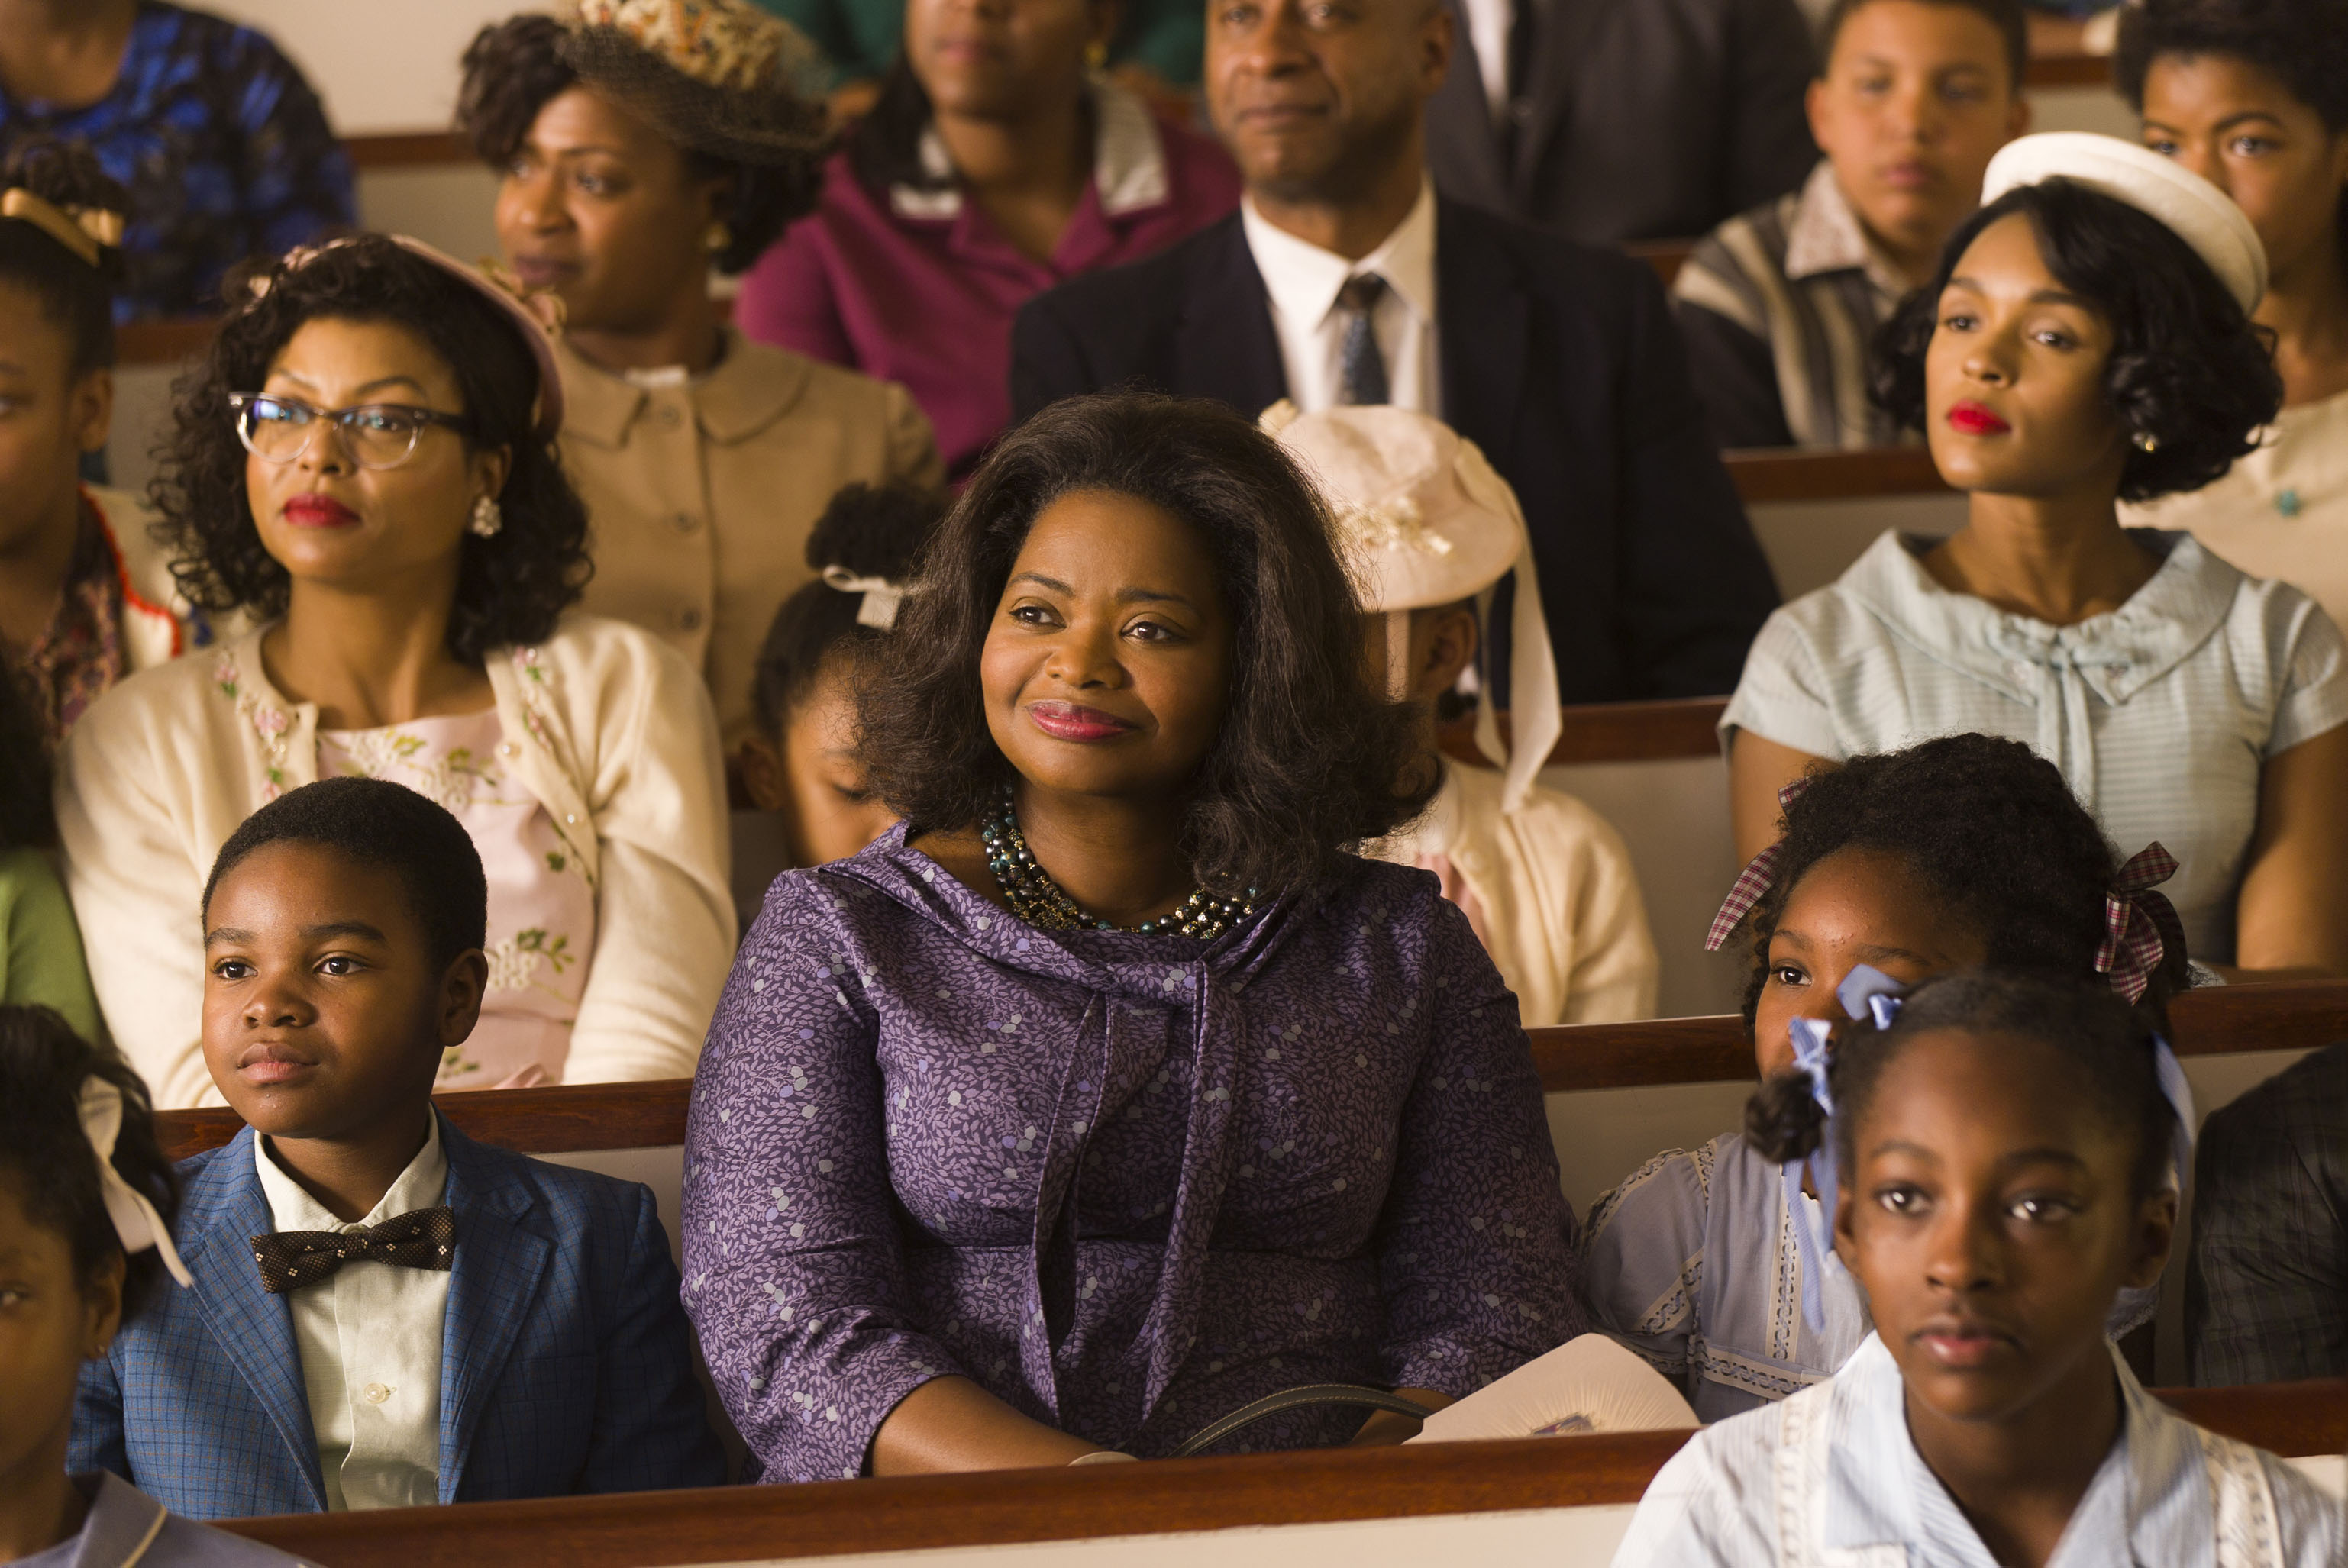 No Merchandising. Editorial Use Only. No Book Cover UsageMandatory Credit: Photo by 20th Century Fox/Kobal/REX/Shutterstock (7727326c) Taraji P. Henson, Octavia Spencer, Janelle Monae 'Hidden Figures' Film - 2016 HIDDEN FIGURES is the incredible untold story of brilliant African-American women working at NASA, who served as the brains behind one of the greatest operations in history: the launch of astronaut John Glenn into orbit, a stunning achievement that restored the nation?s confidence, turned around the Space Race, and galvanized the world. The visionary trio crossed all gender and race lines to inspire generations to dream big